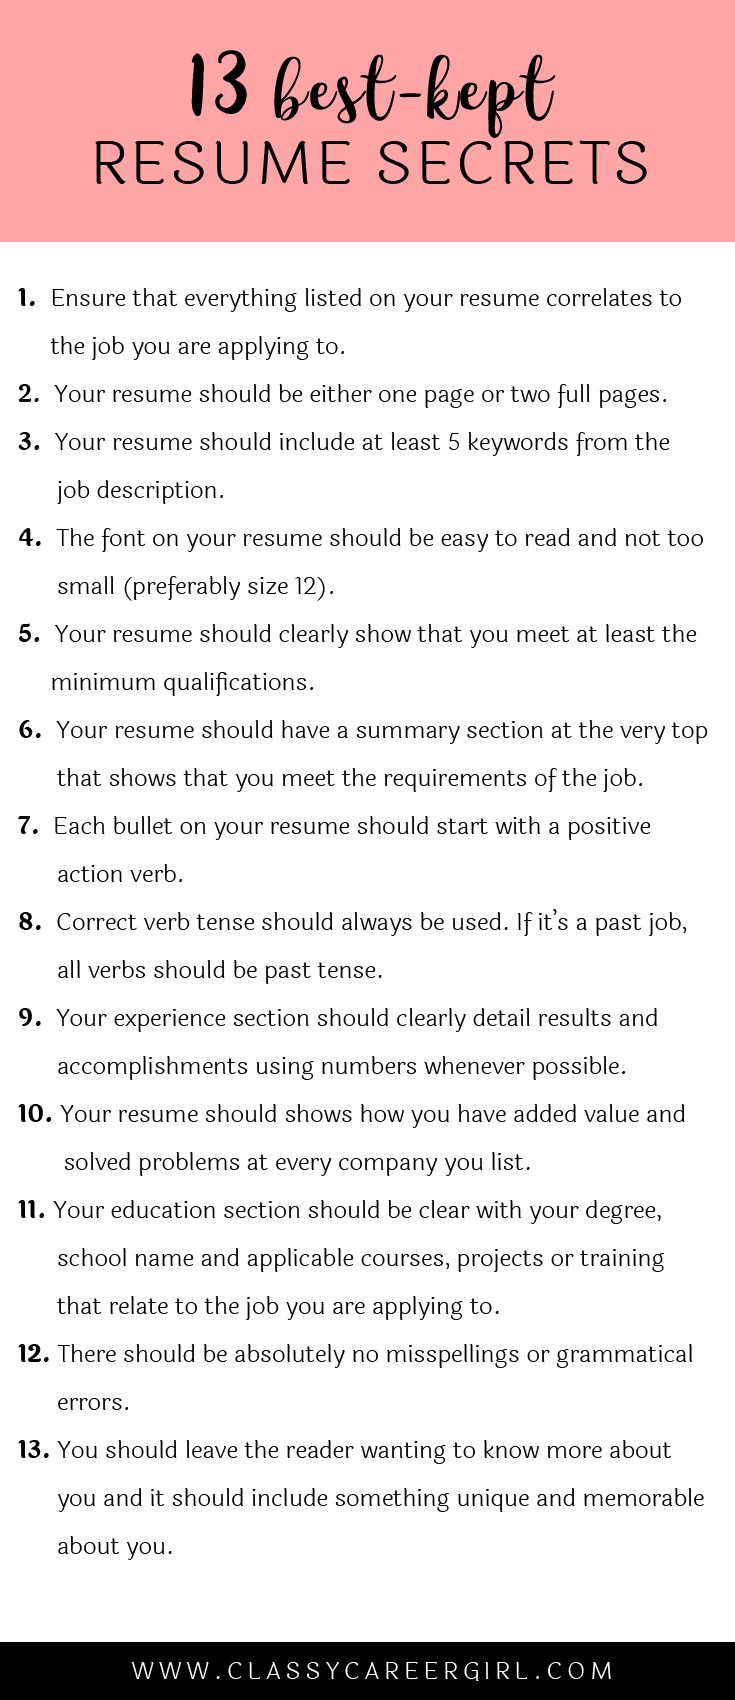 Opposenewapstandardsus  Remarkable  Ideas About Resume On Pinterest  Cv Format Resume Cv And  With Marvelous Some Hiring Managers Will Toss Your Resume Out If You Dont Know These  With Attractive Resume Template Word  Also Medical Assistant Skills For Resume In Addition Intern Resume Sample And Therapist Resume As Well As Writing An Effective Resume Additionally Medical Office Resume From Pinterestcom With Opposenewapstandardsus  Marvelous  Ideas About Resume On Pinterest  Cv Format Resume Cv And  With Attractive Some Hiring Managers Will Toss Your Resume Out If You Dont Know These  And Remarkable Resume Template Word  Also Medical Assistant Skills For Resume In Addition Intern Resume Sample From Pinterestcom